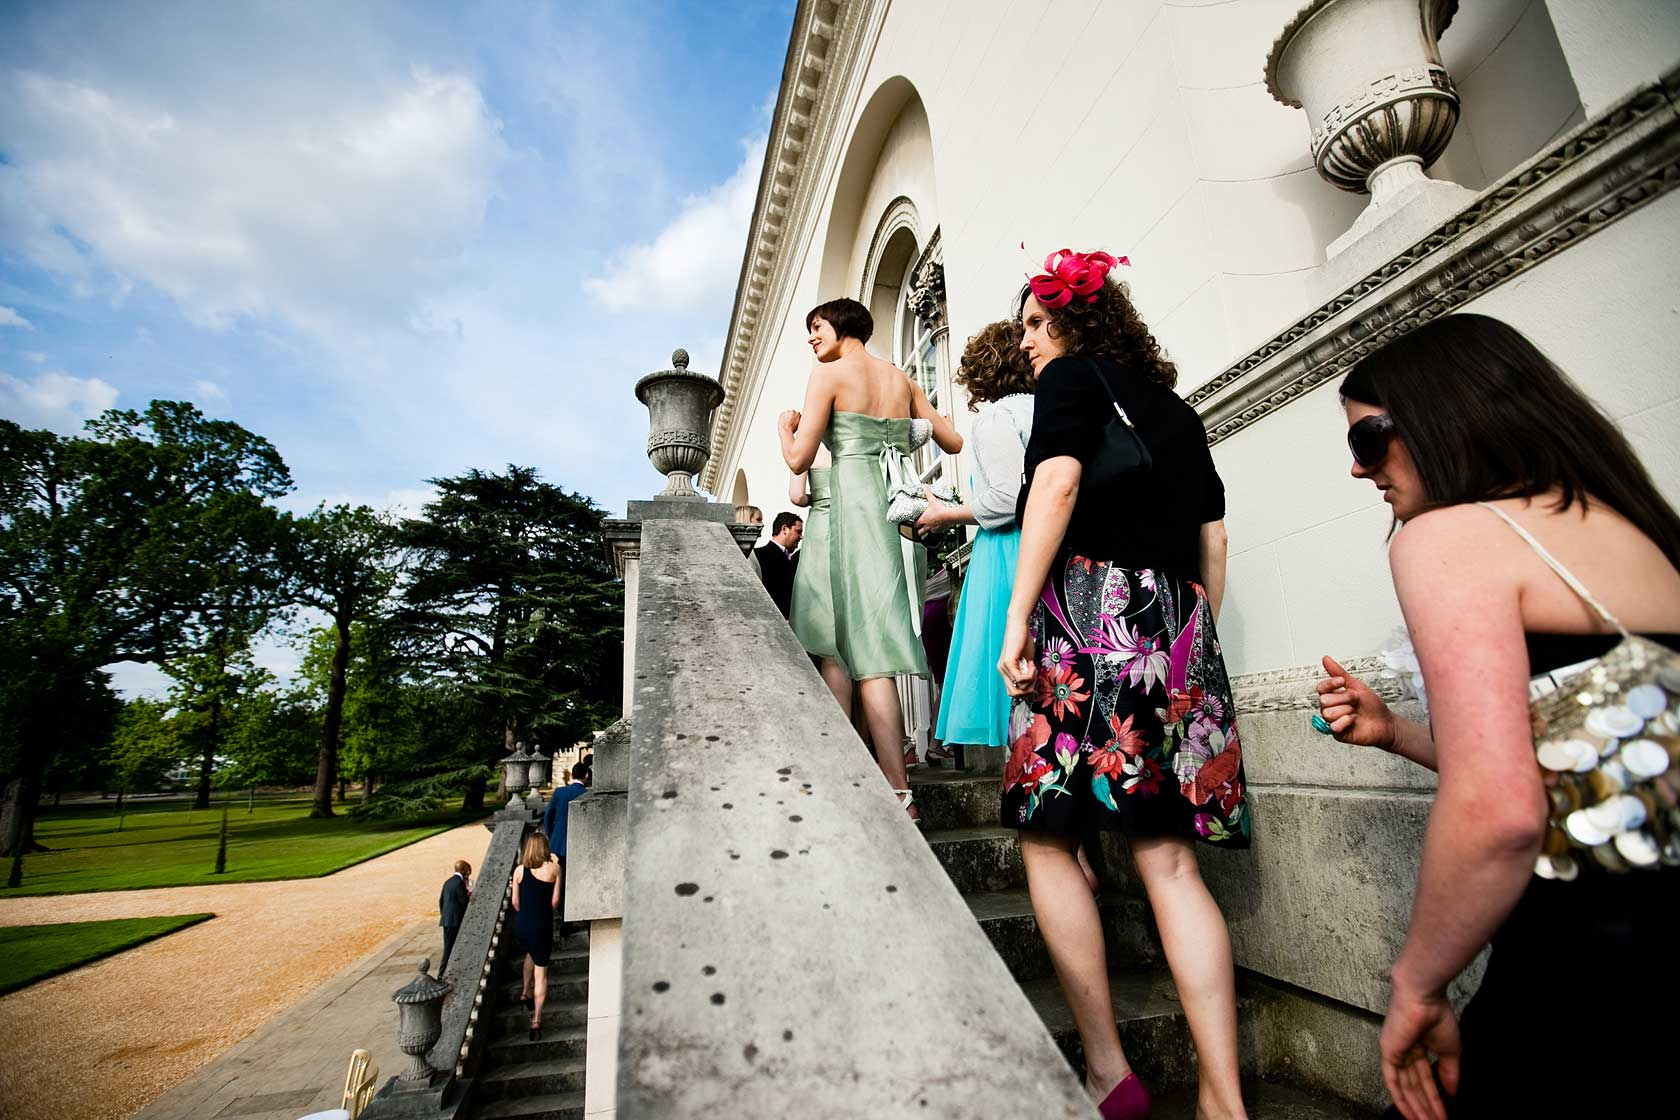 Reportage Wedding Photography at Chiswick House